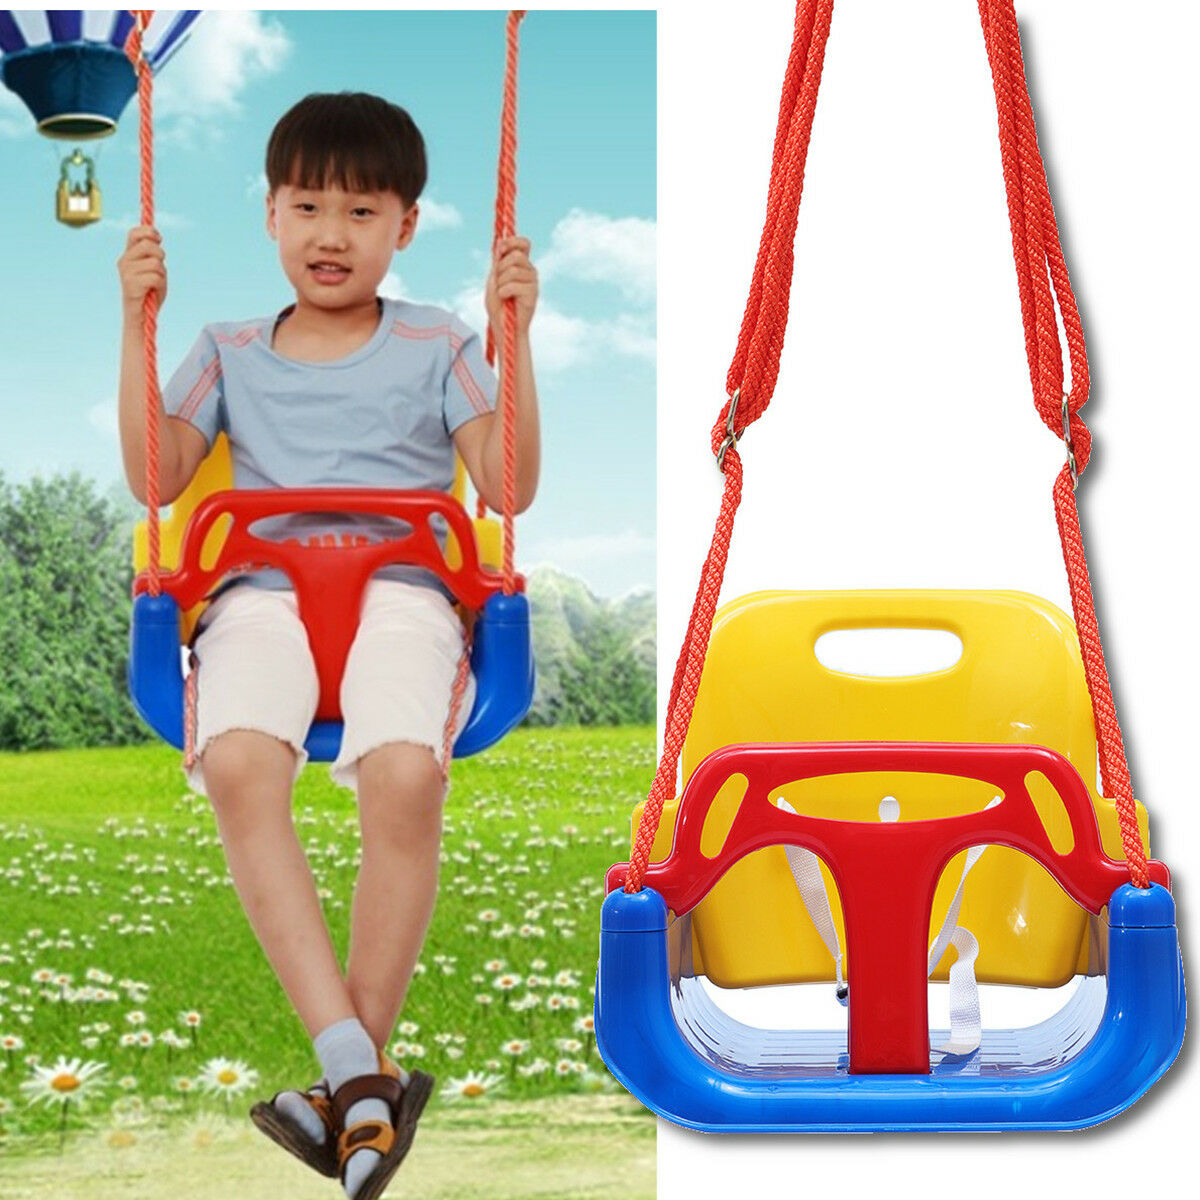 Blue Rebo Back Supporting Baby Safety Swing Seat Adjustable Ropes